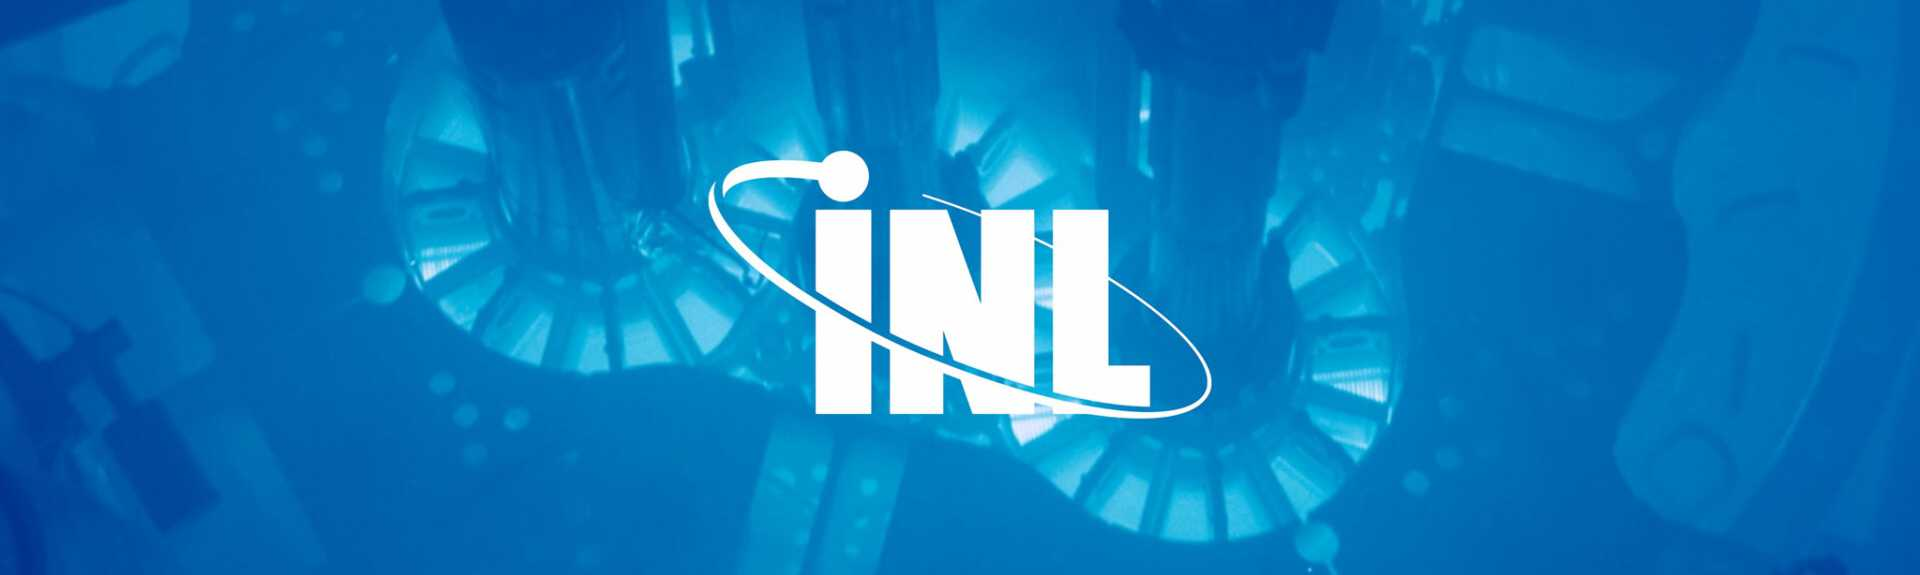 INL Nuclear Science and Technology Facilities